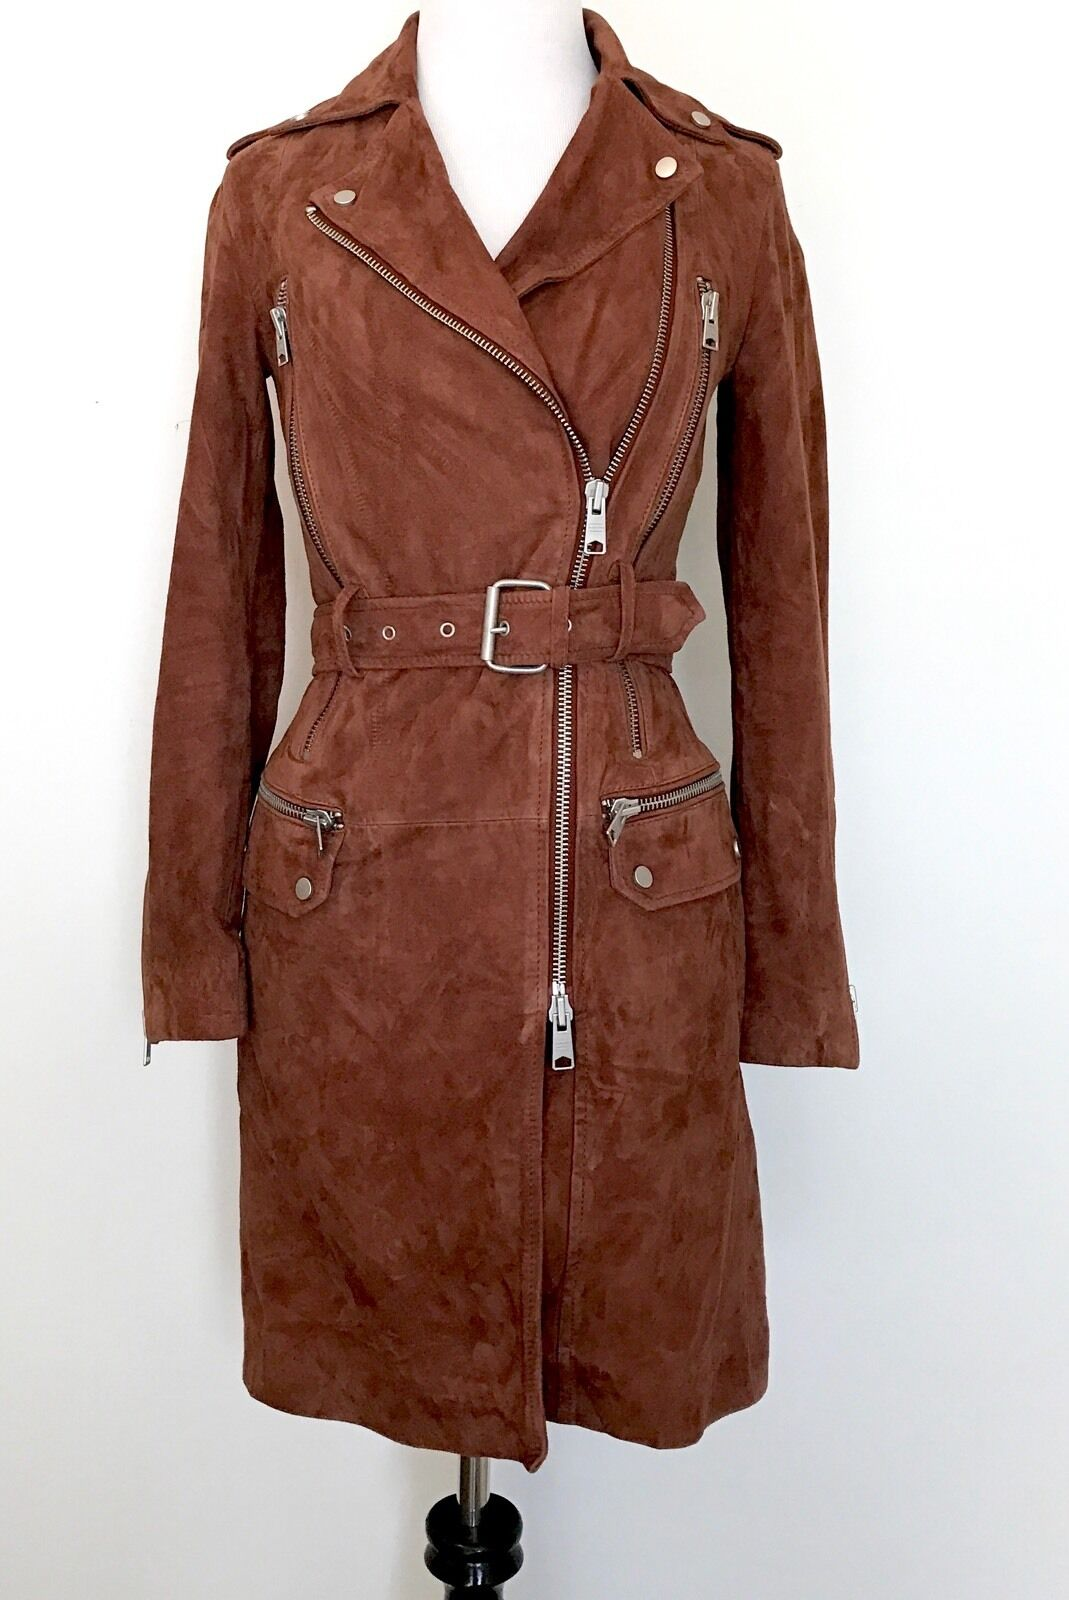 AllSaints Chiltern Brick Brown Leather Coat. NWT Retail $830 Price $455 Size 00